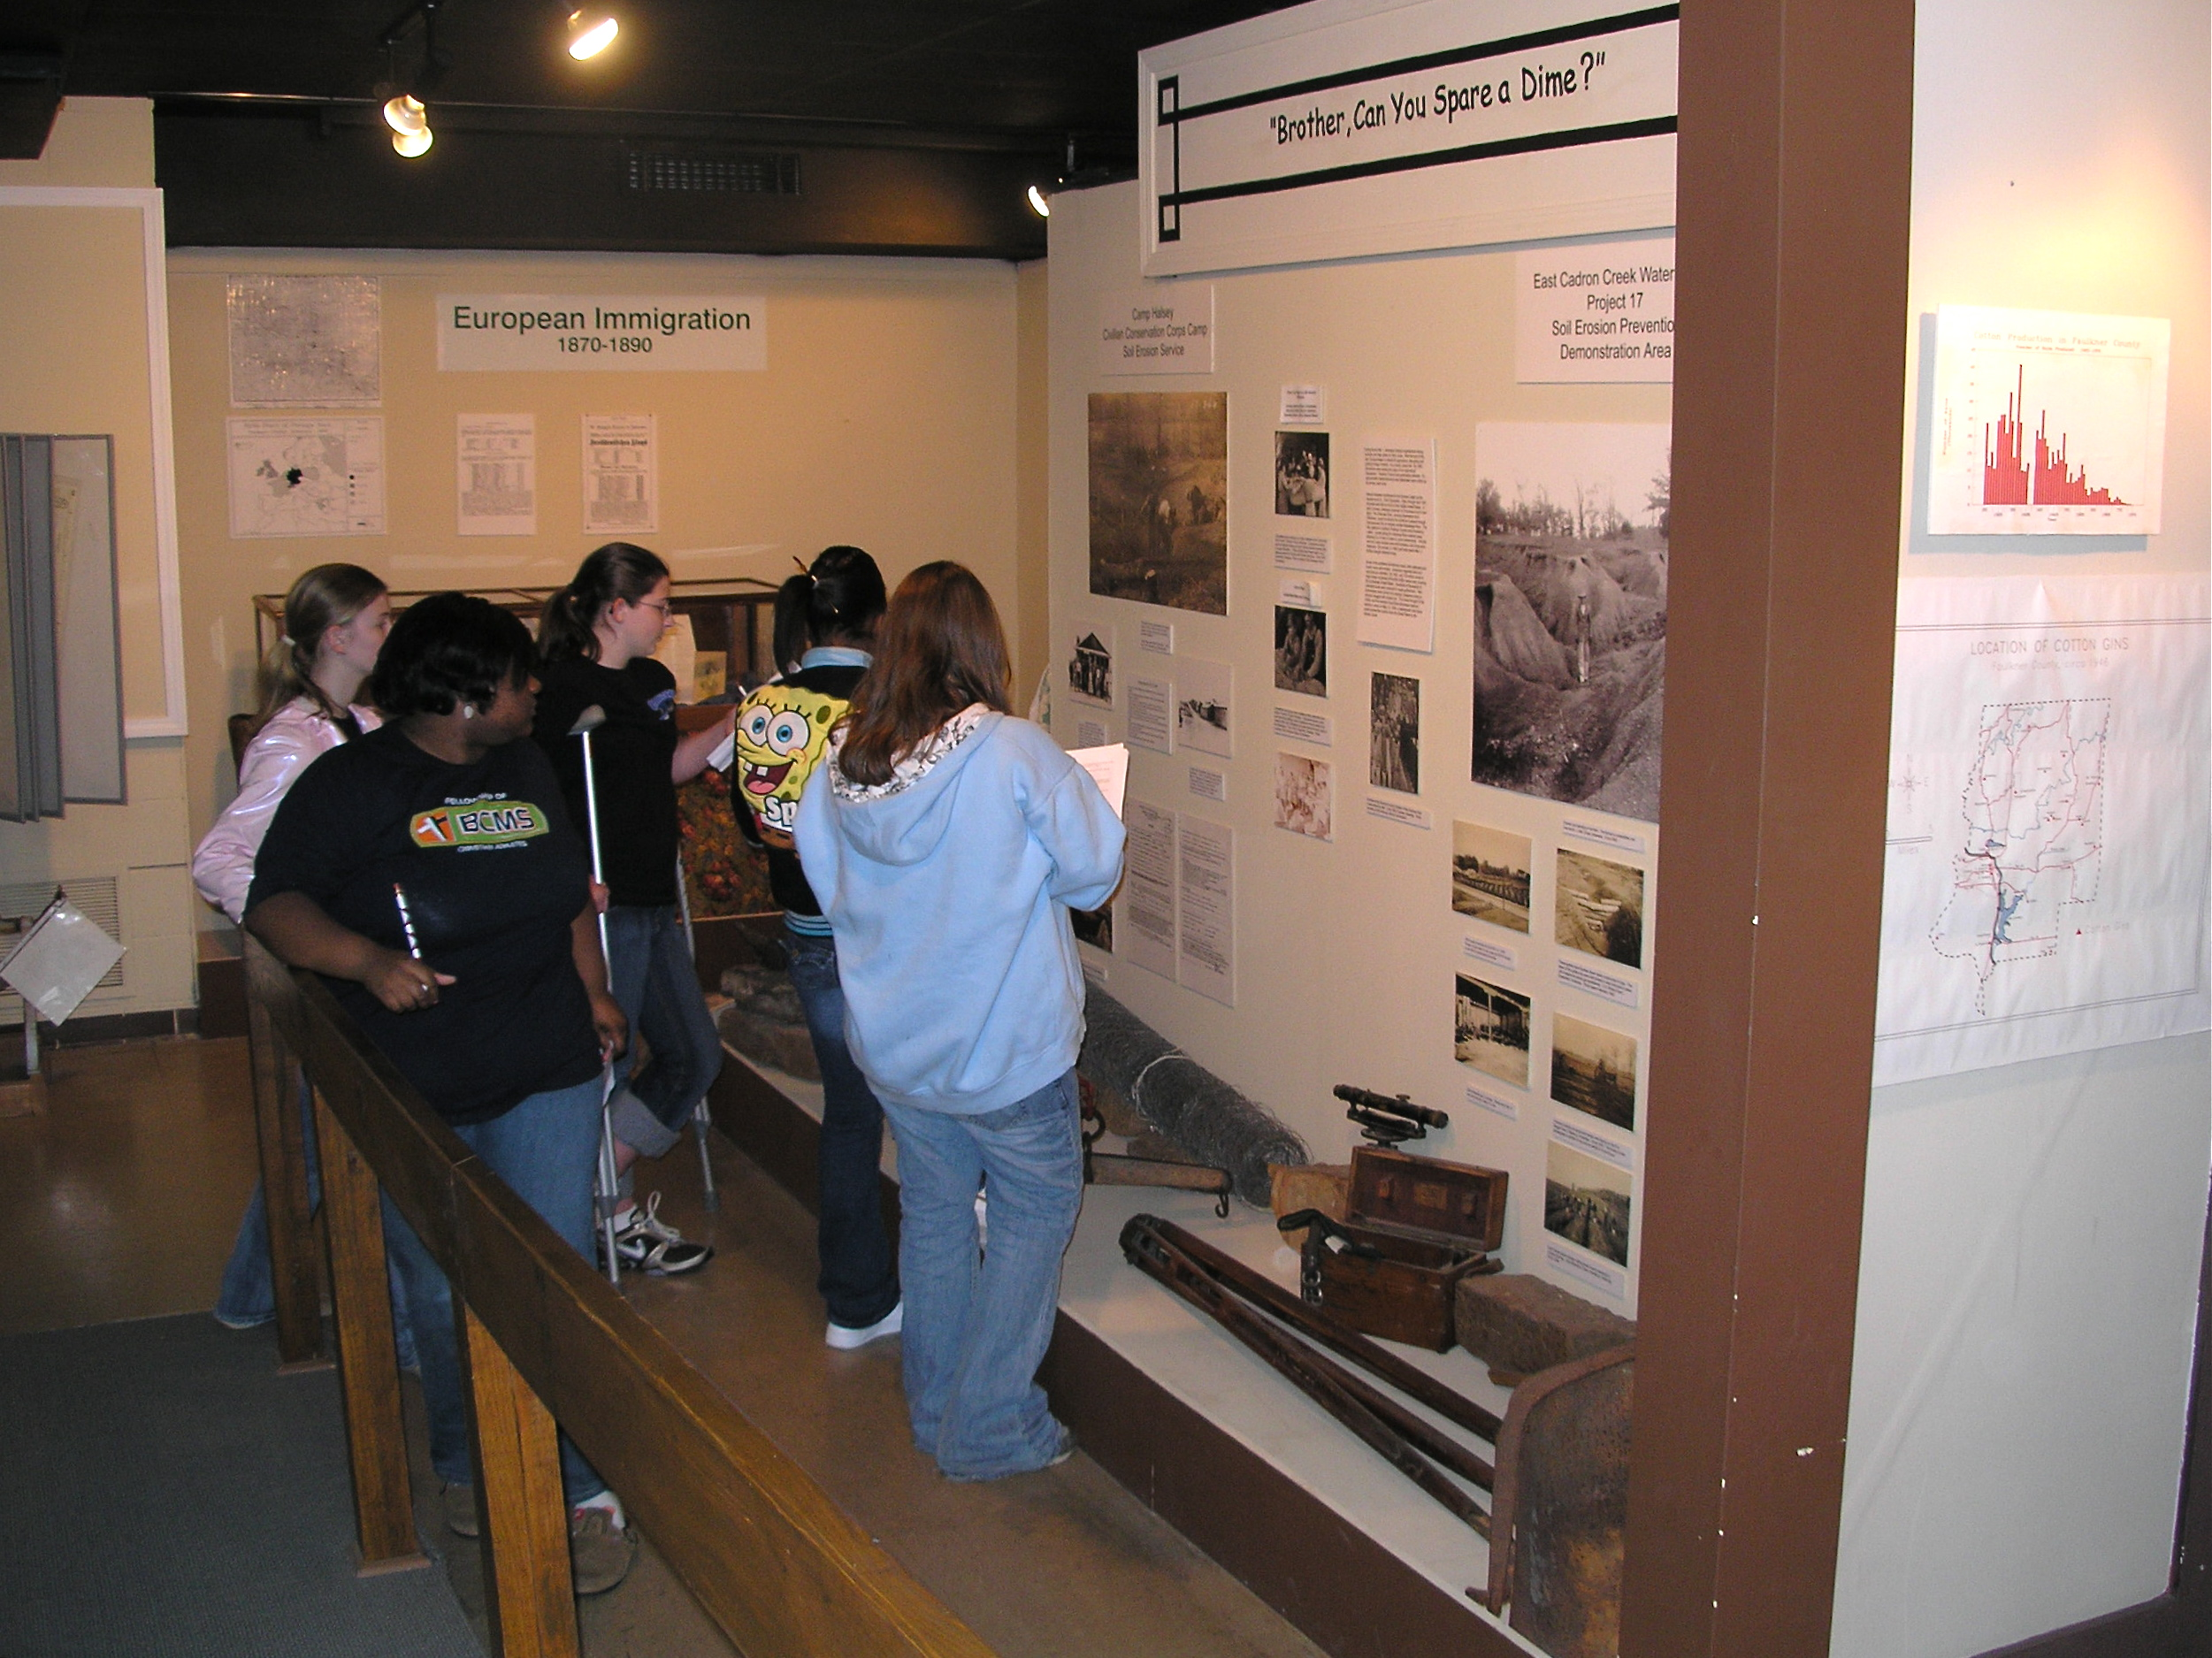 A school group visits the Faulkner County Museum in Conway, Arkansas